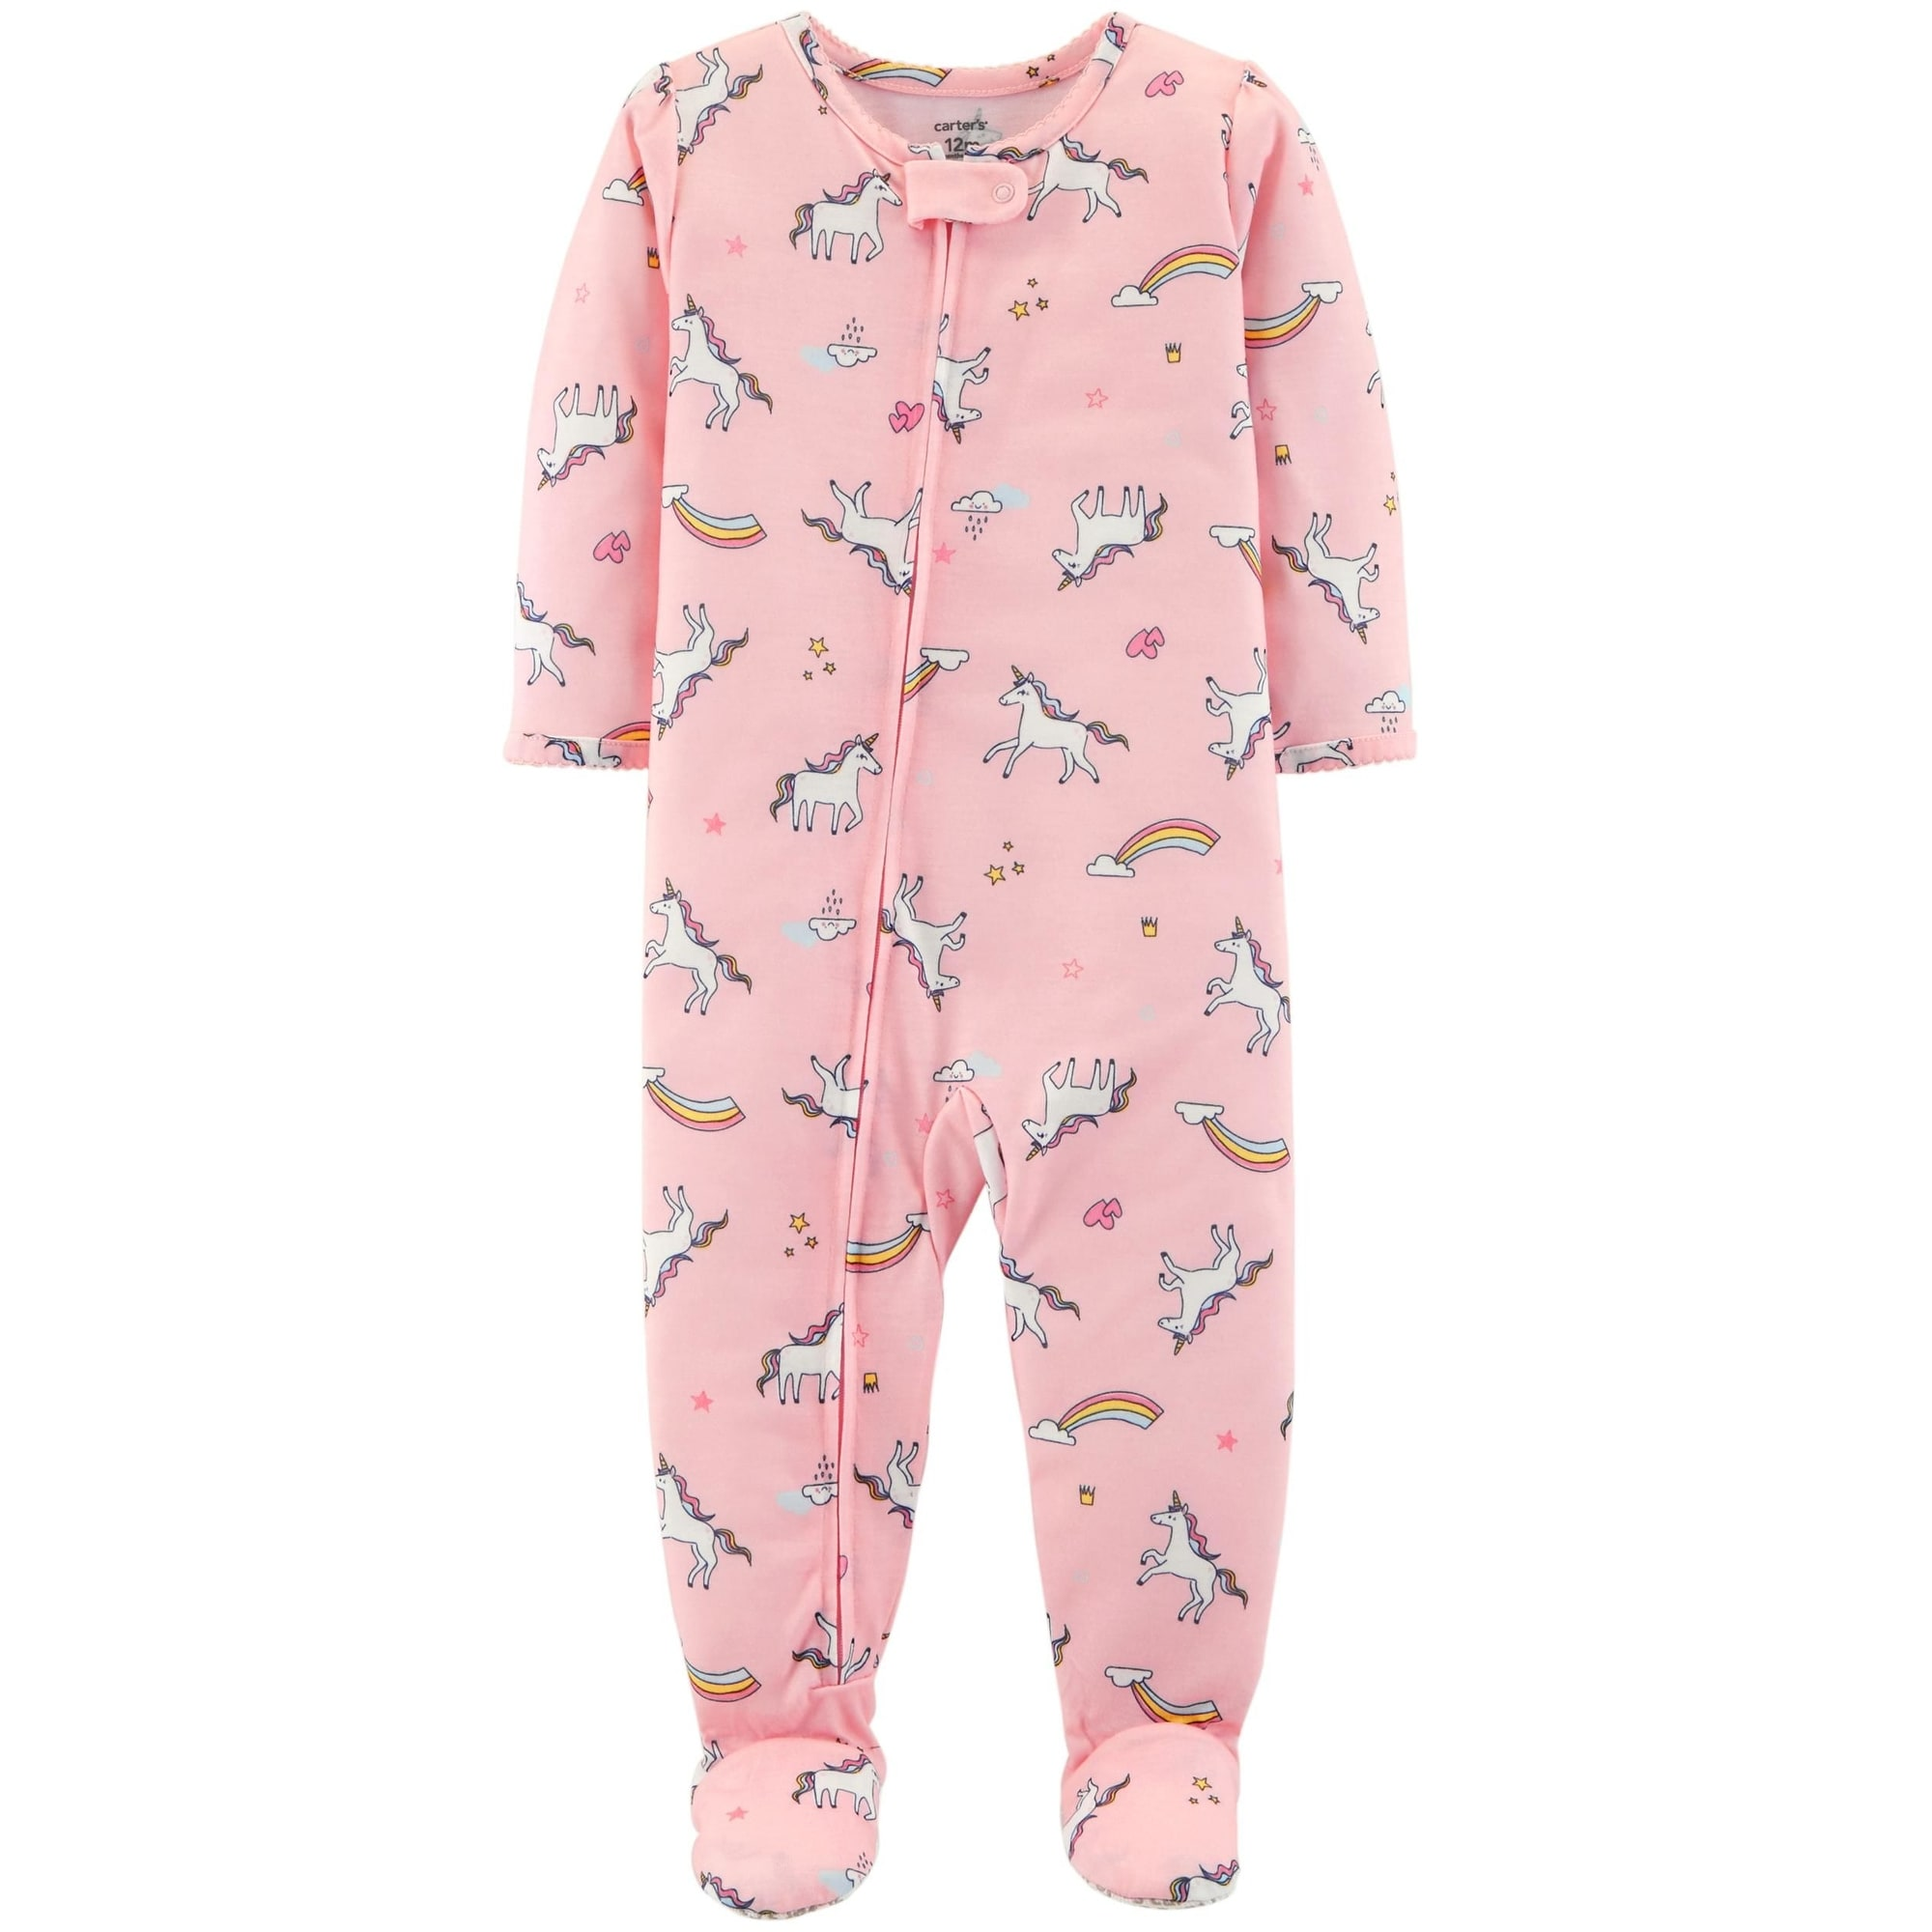 79a353600e4b Shop Carter s Baby Girls  1 Pc Comfy Fit Poly Unicorn Rainbow Footed ...